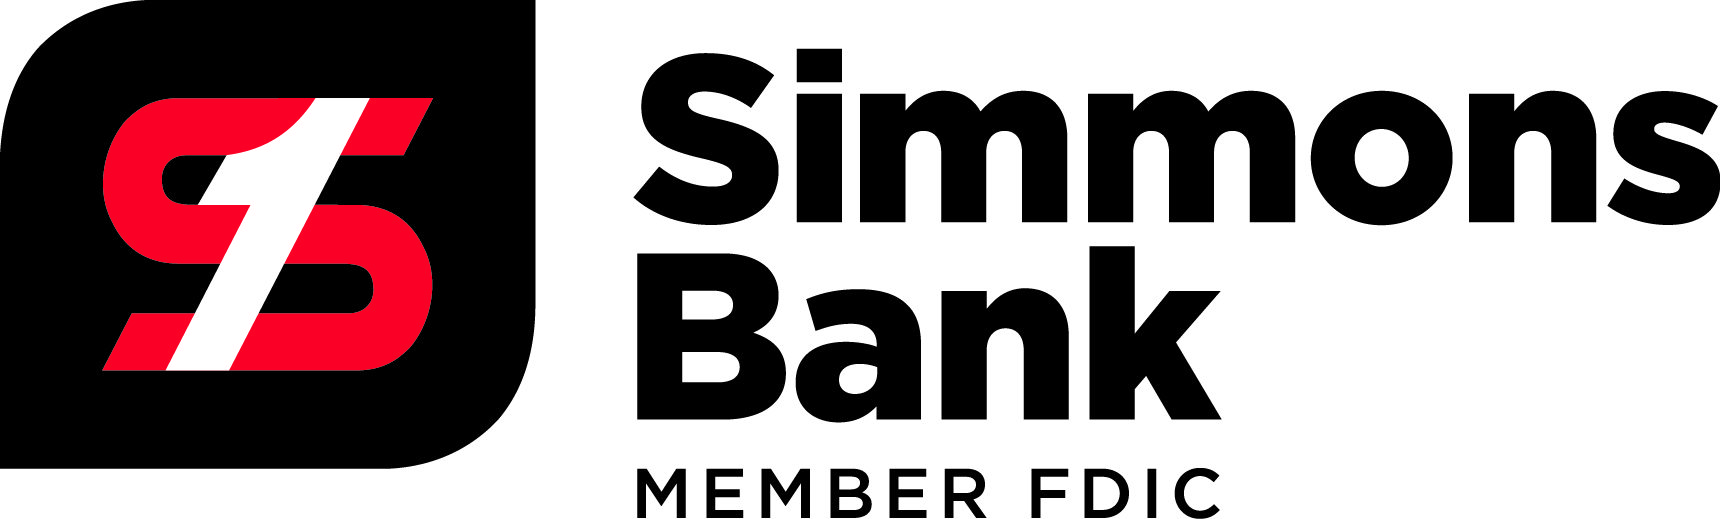 Simmons Bank Nov. 2018_1541784707075.jpg.jpg